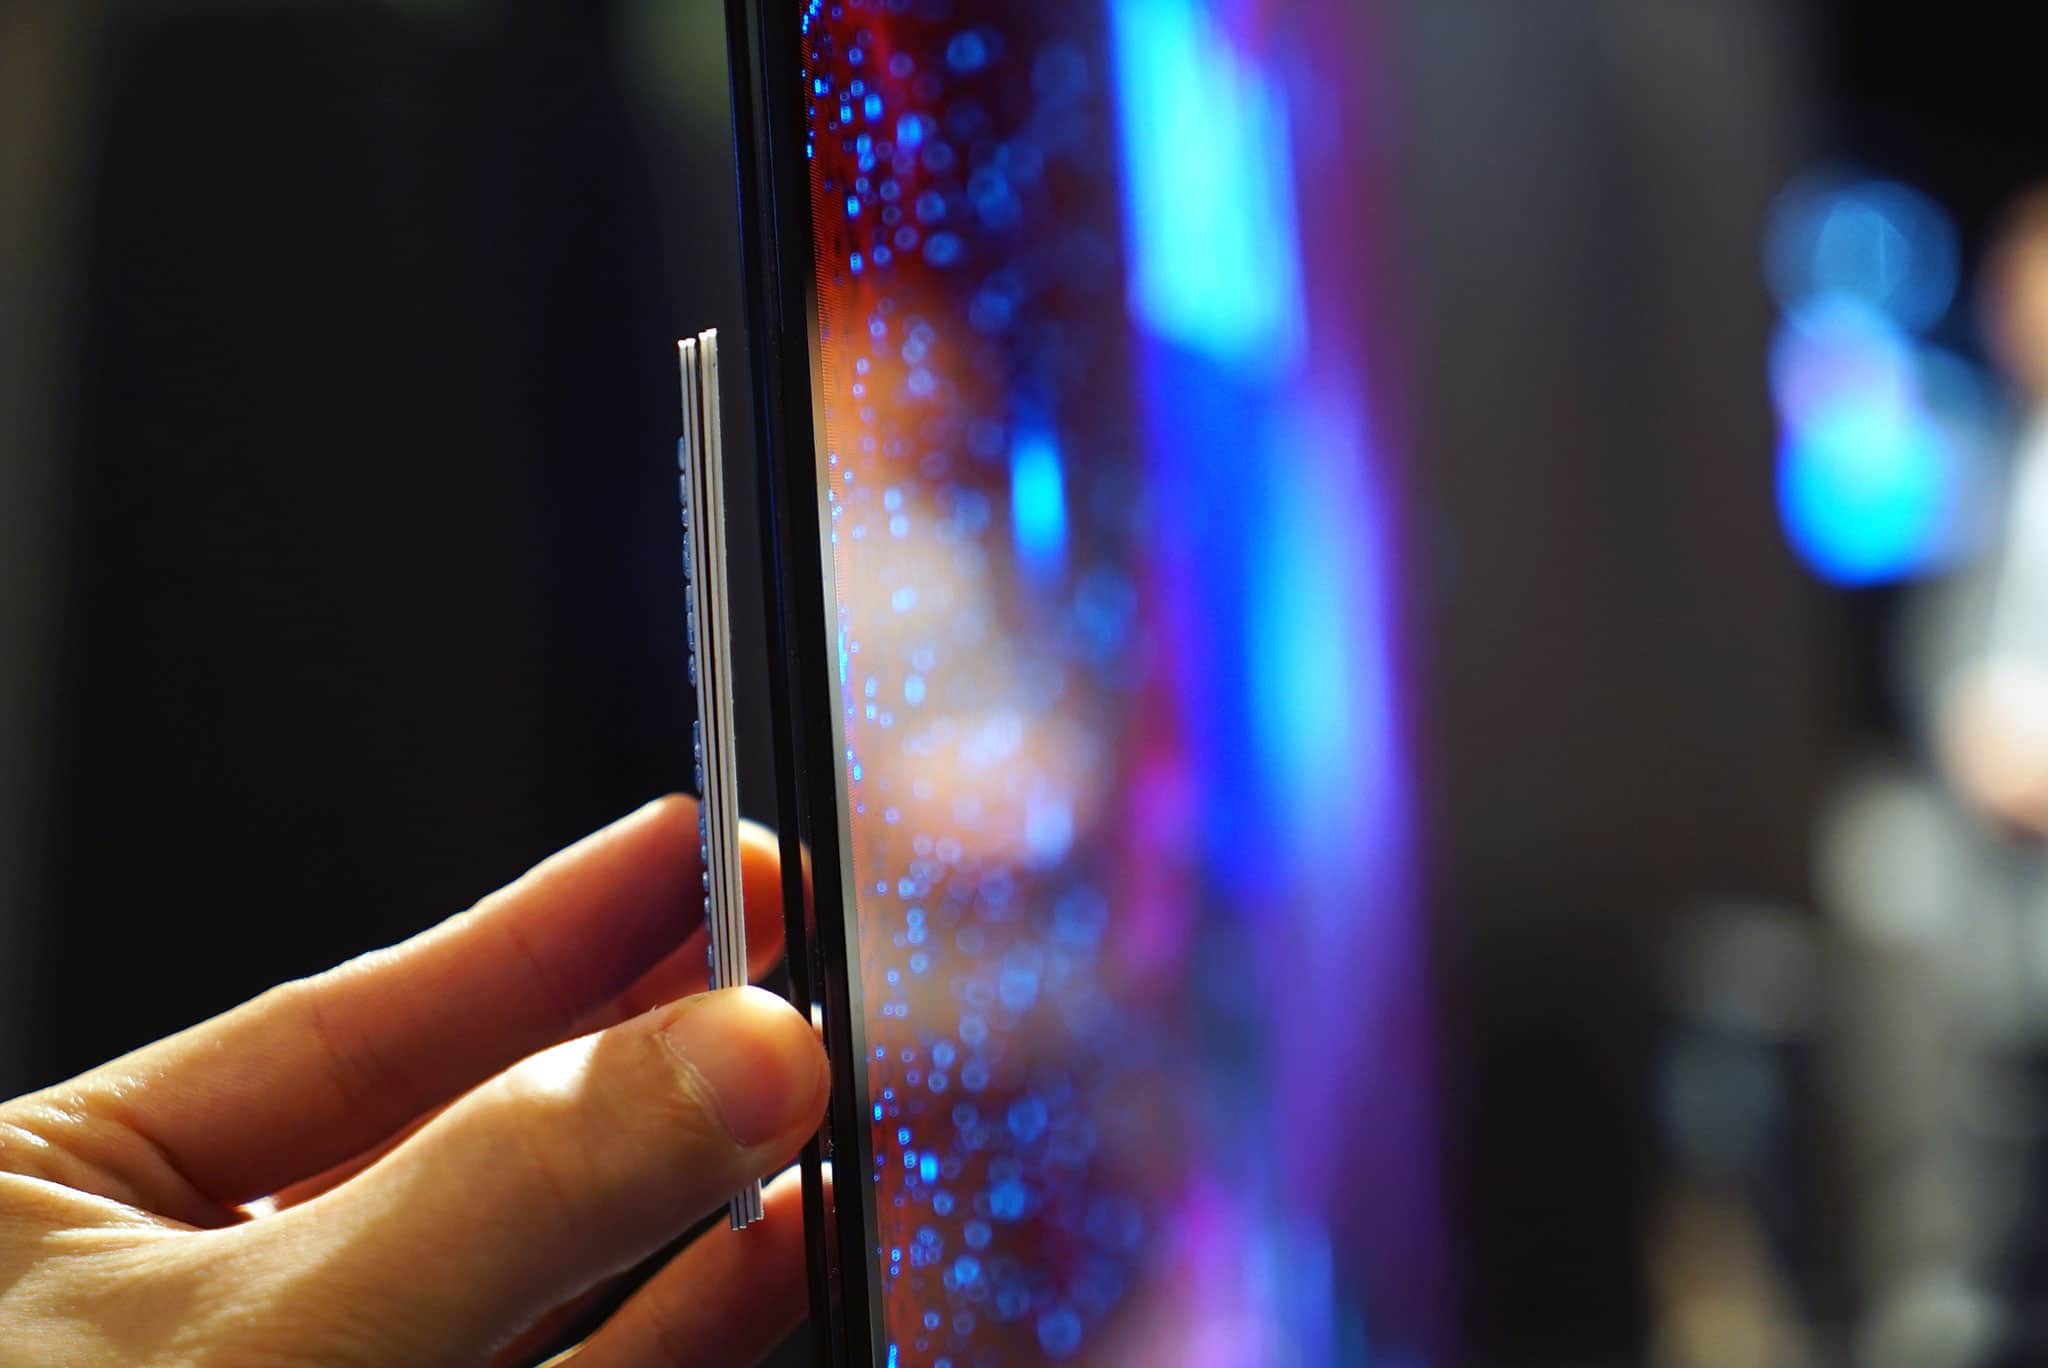 The LG 4K Signature TV is as thin as 4 credit cards.